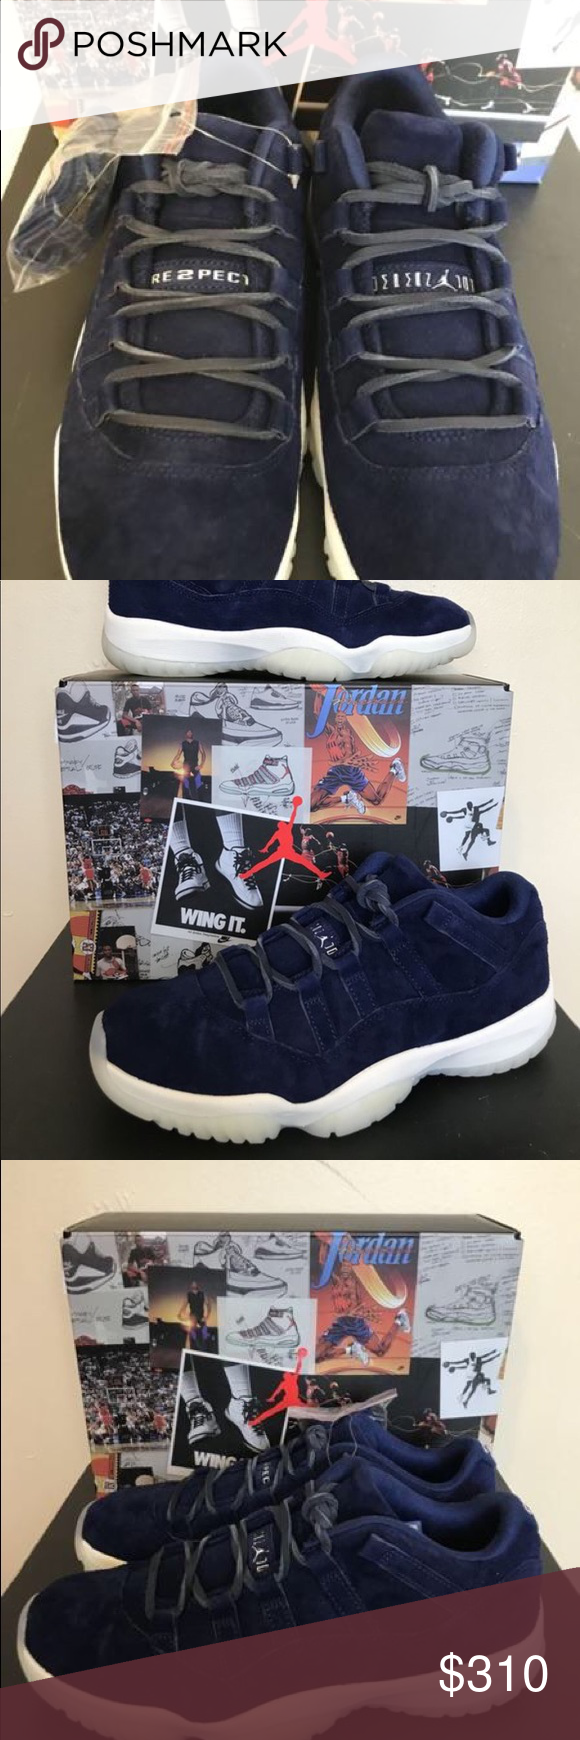 5630d034ea9 Air Jordan 11 retro low too respect Jester navy air Jordan 11 low retro  respect. Will ship out same day as payment. Thank you for visiting my store.